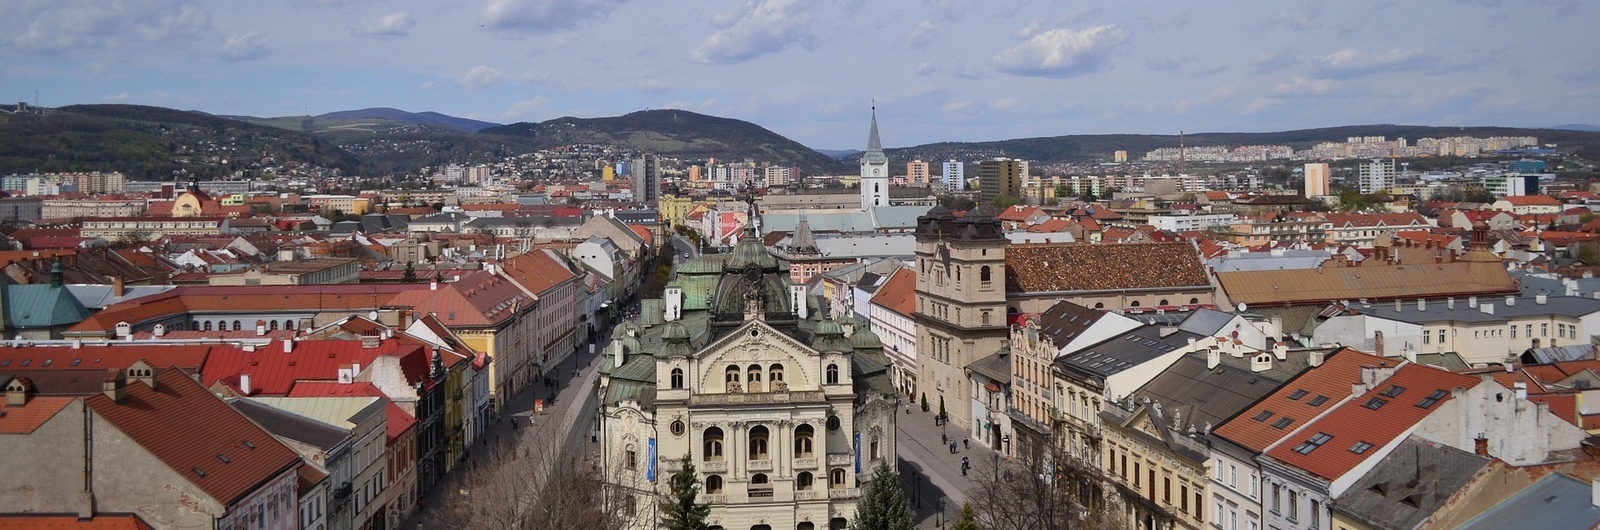 kosice city header